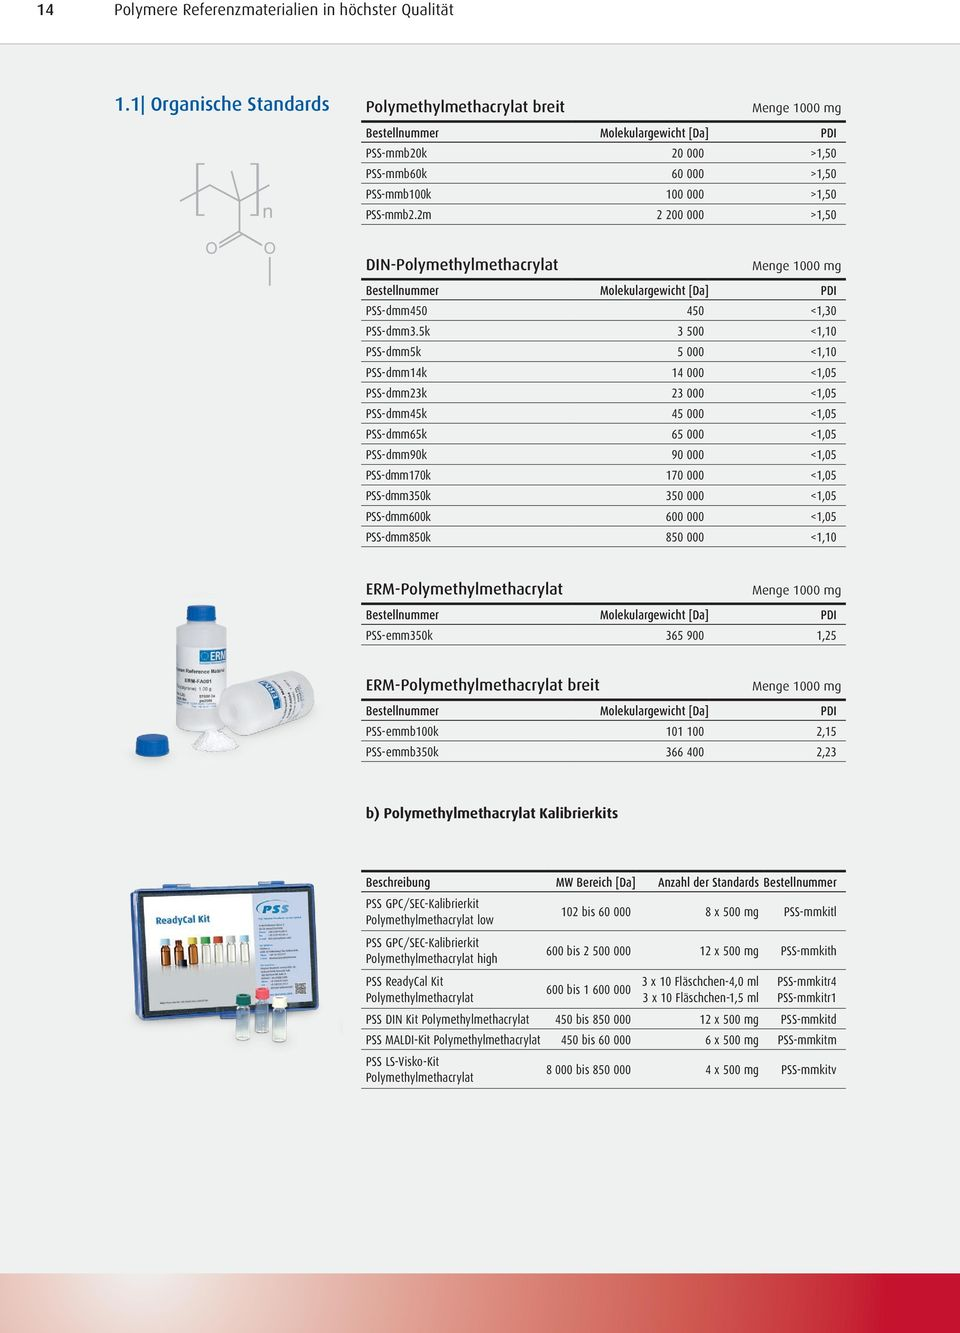 2m 2 200 000 >1,50 DIN-Polymethylmethacrylat Menge 1000 mg PSS-dmm450 450 <1,30 PSS-dmm3.